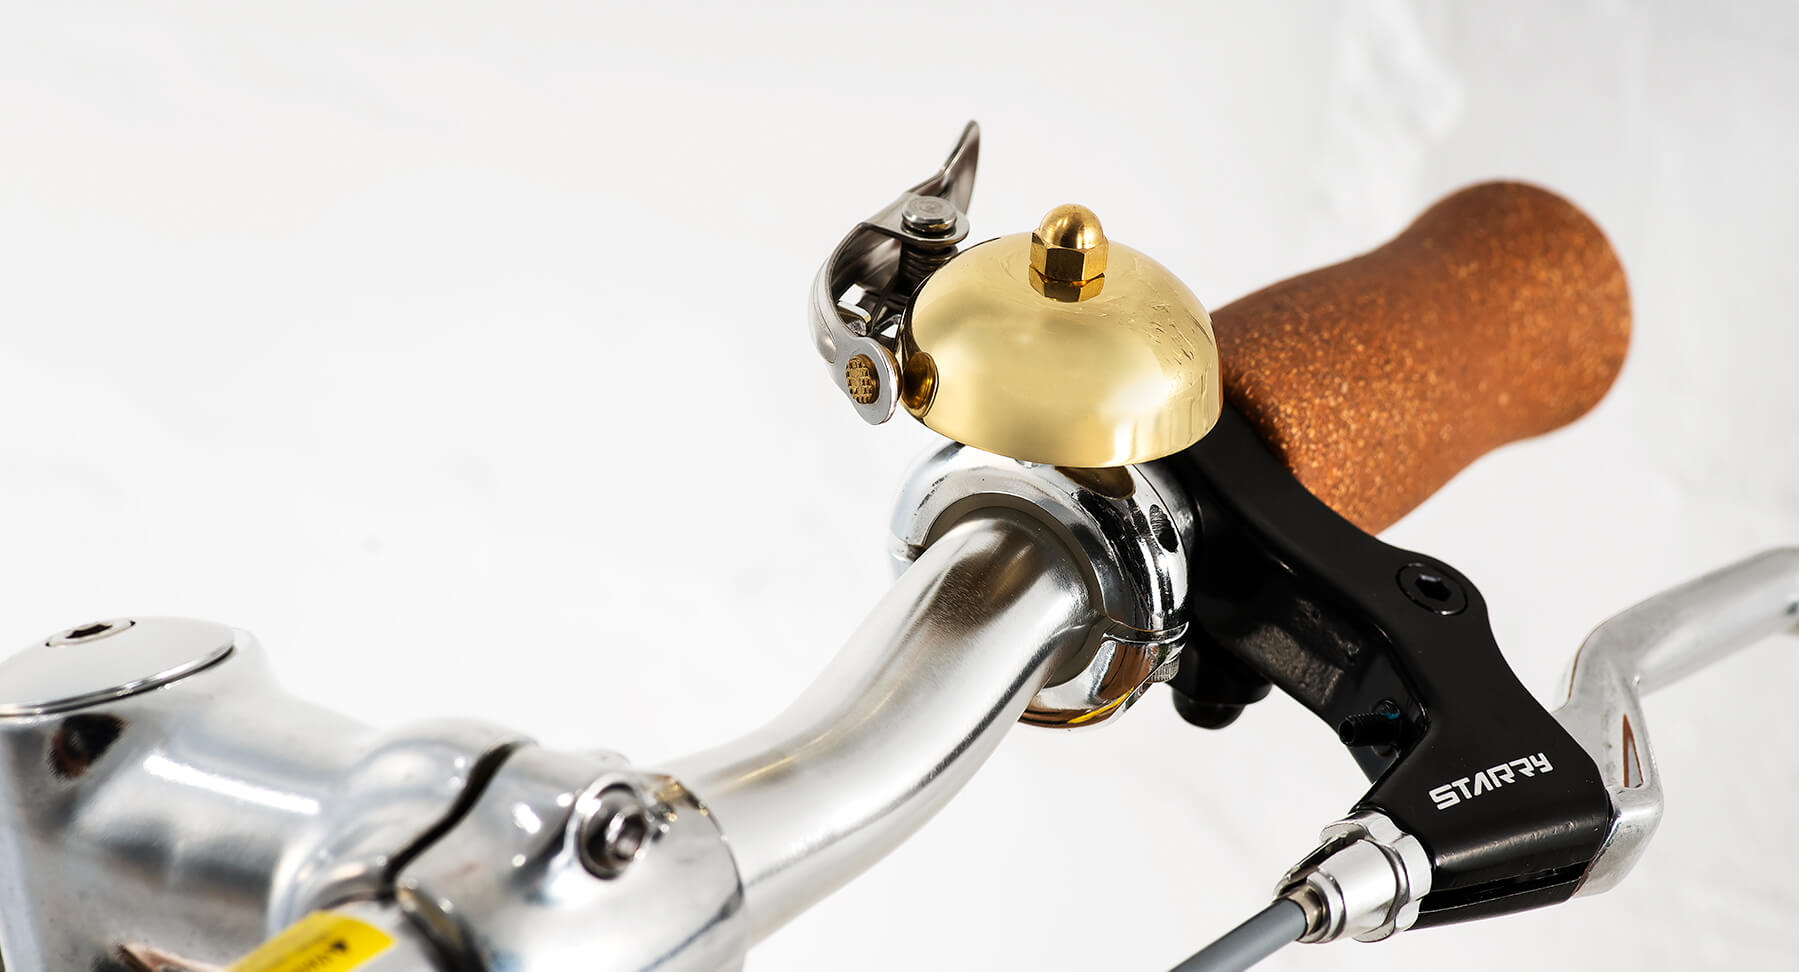 scooter bell, bell for scooter, bike bell